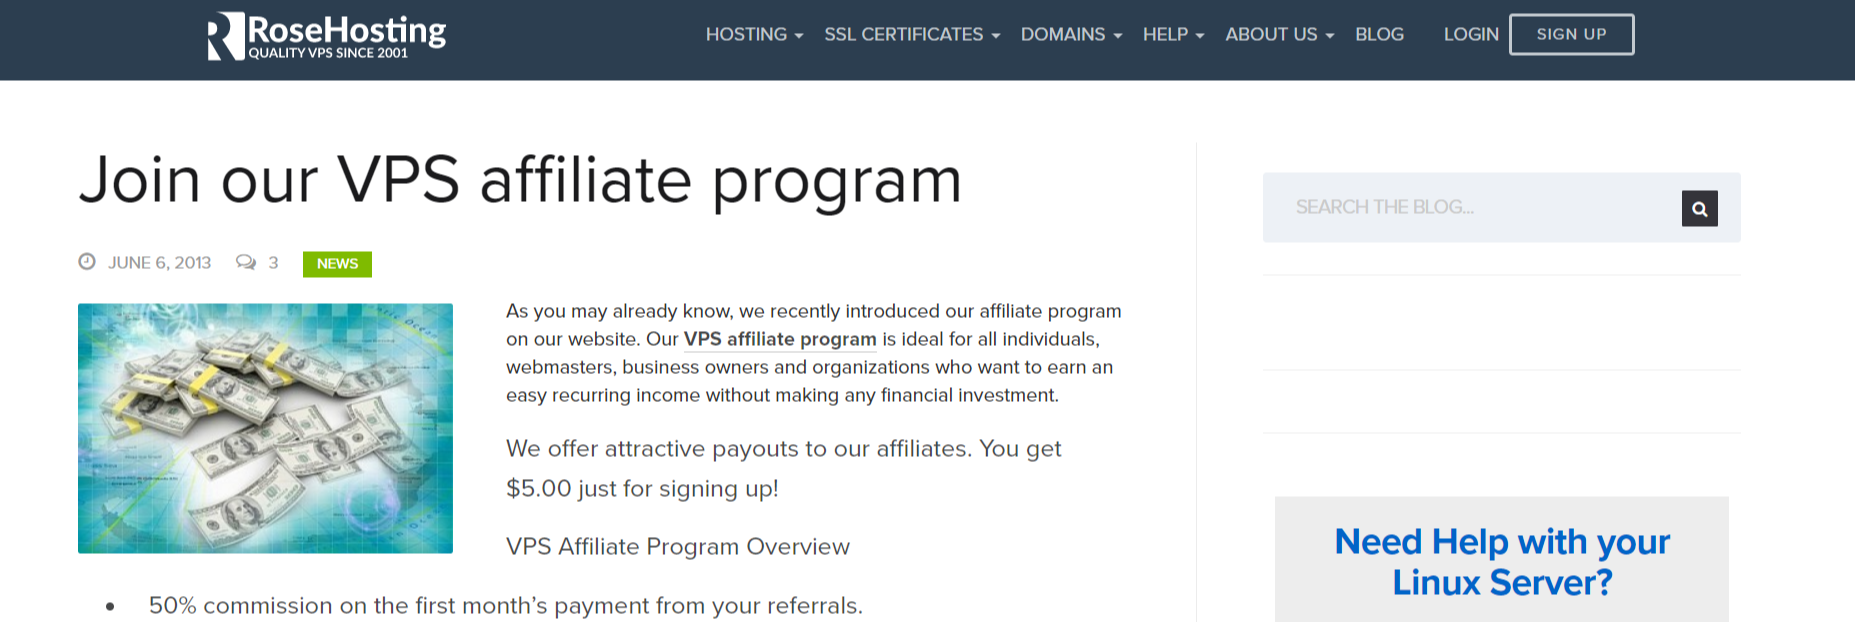 Rose Hosting- Affiliate Programs